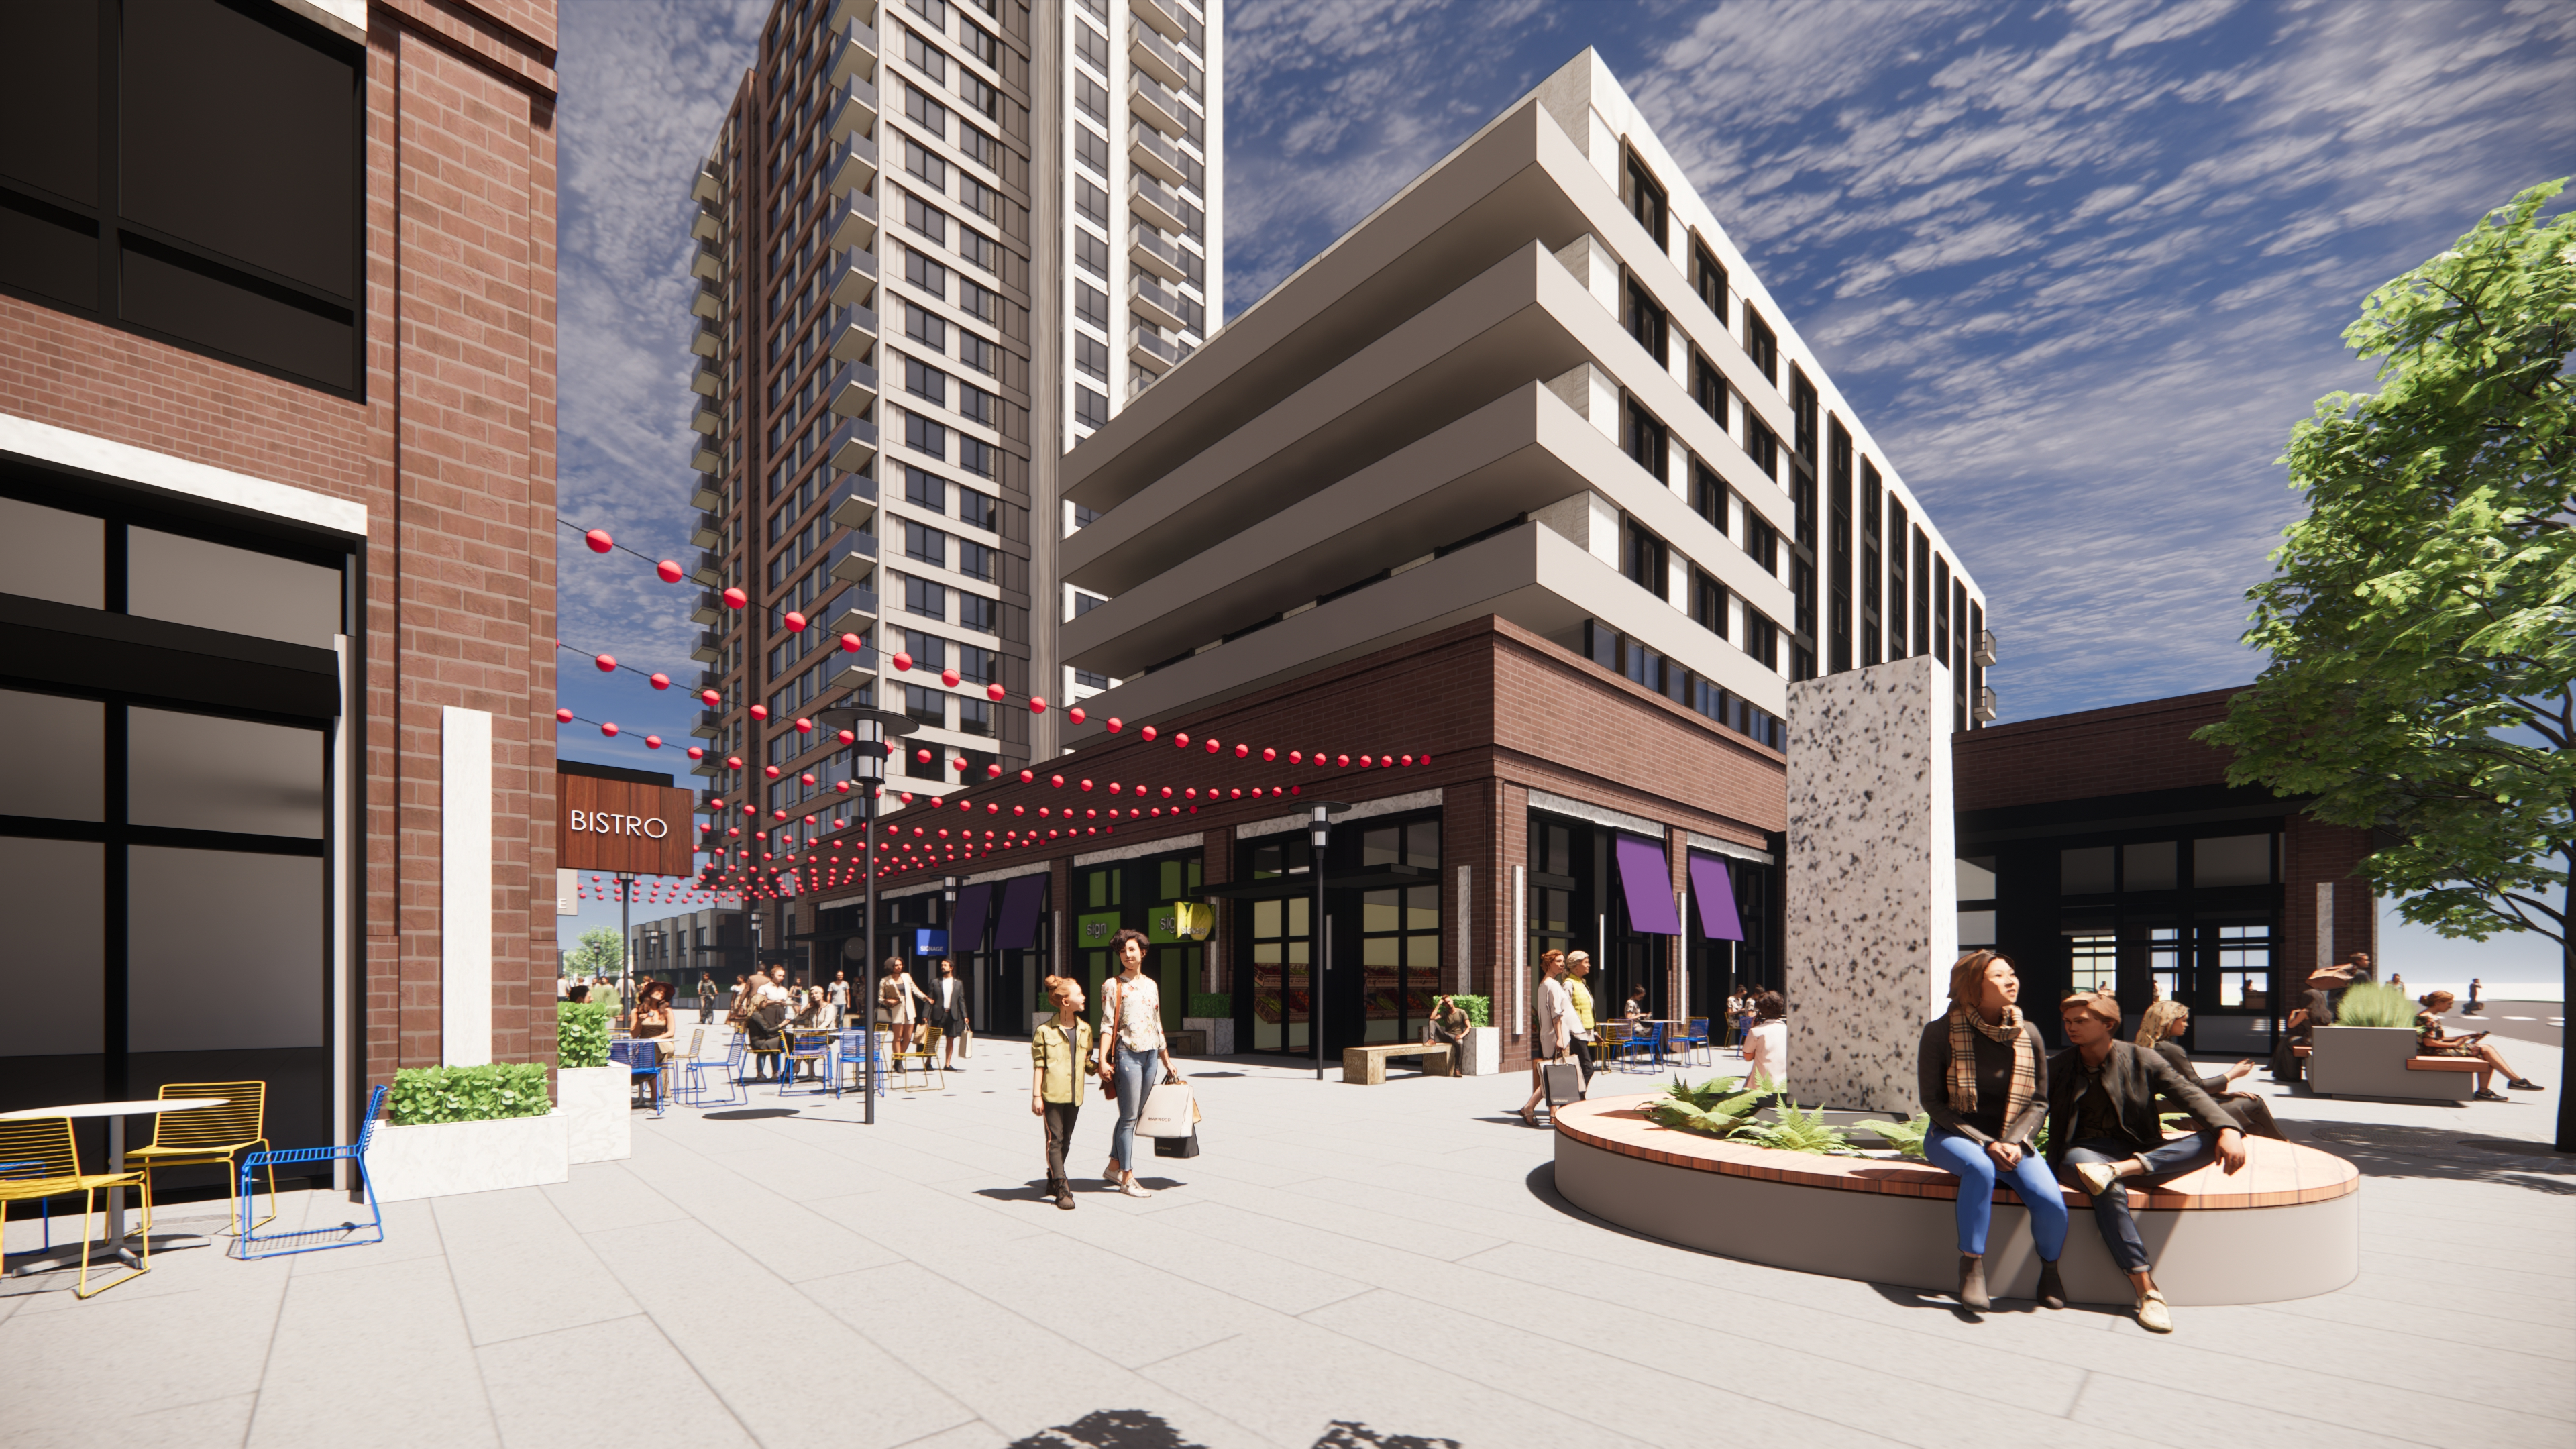 A colour rendering of the street level view of the plaza area with retail businesses with the site towers in the background